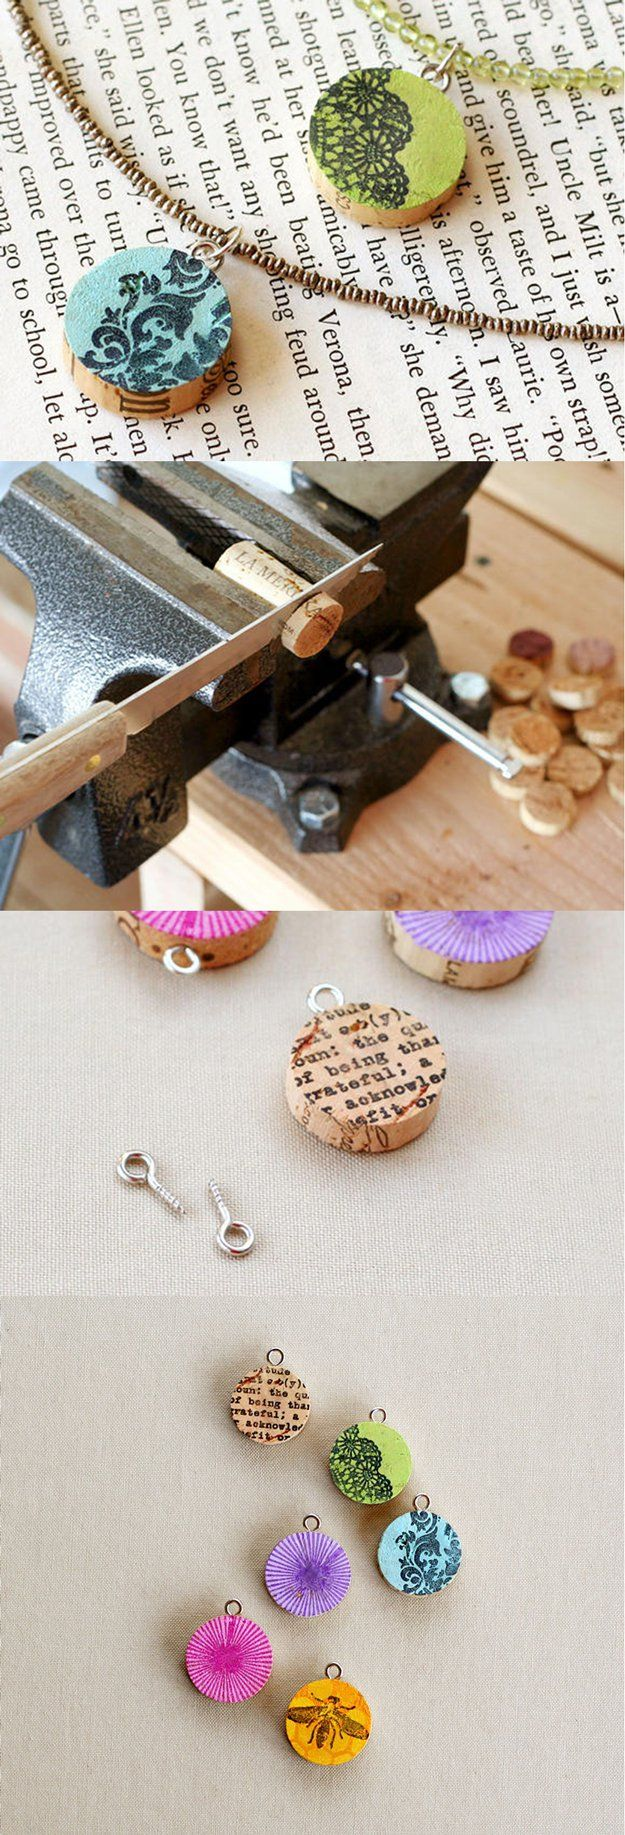 DIY Joyería Cork Wine for Teens | http://artesaniasdebricolaje.ru/more-wine-cork-crafts-ideas/